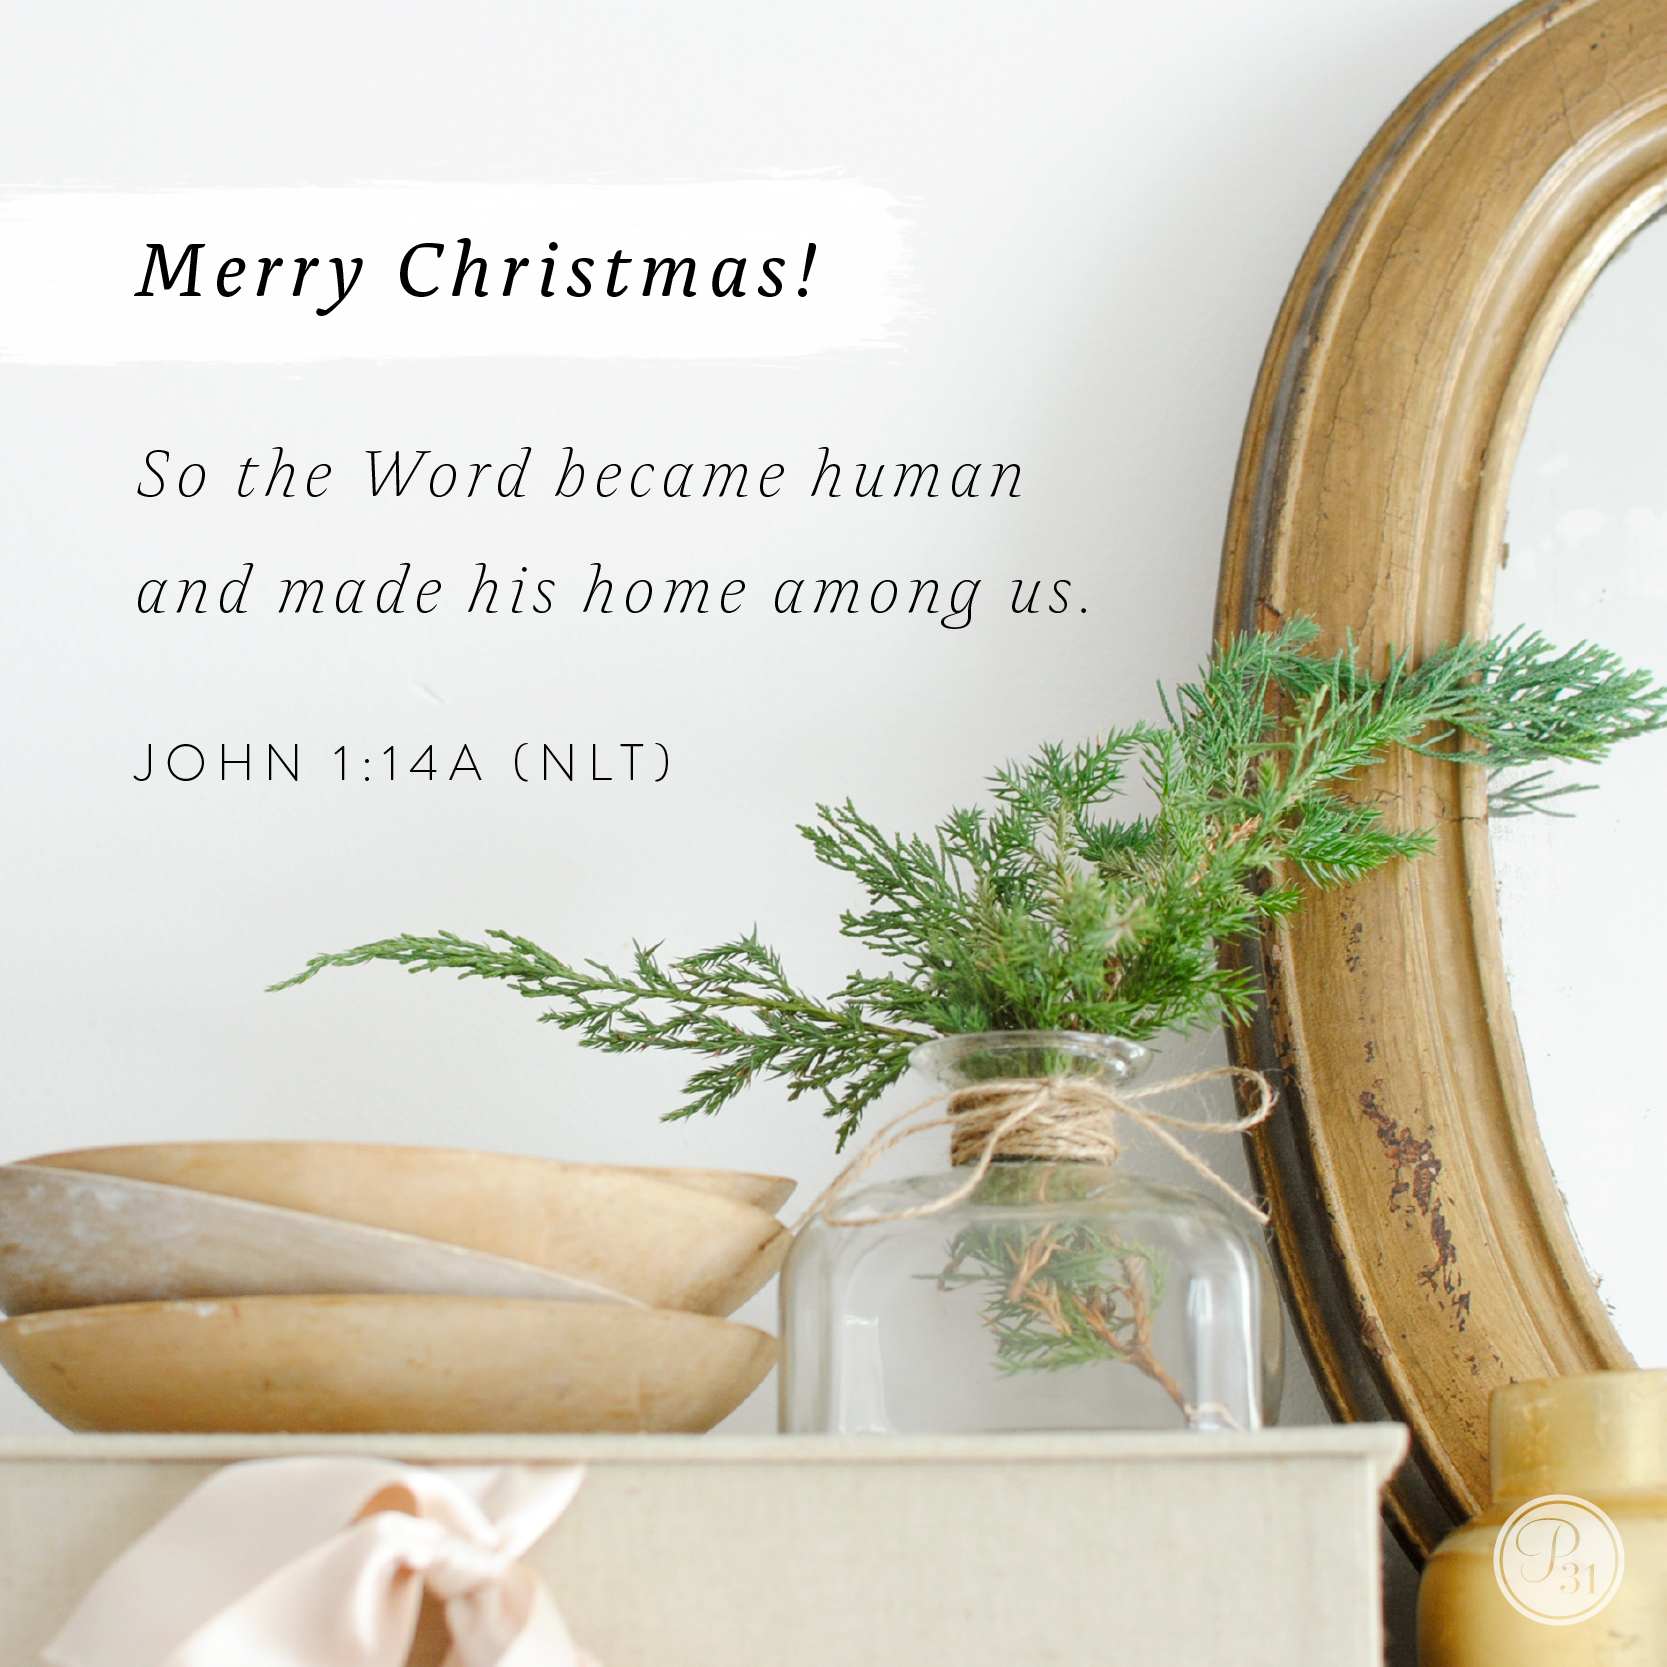 Christmas Prayer.Christmas Prayers For The Merry And Not So Merry